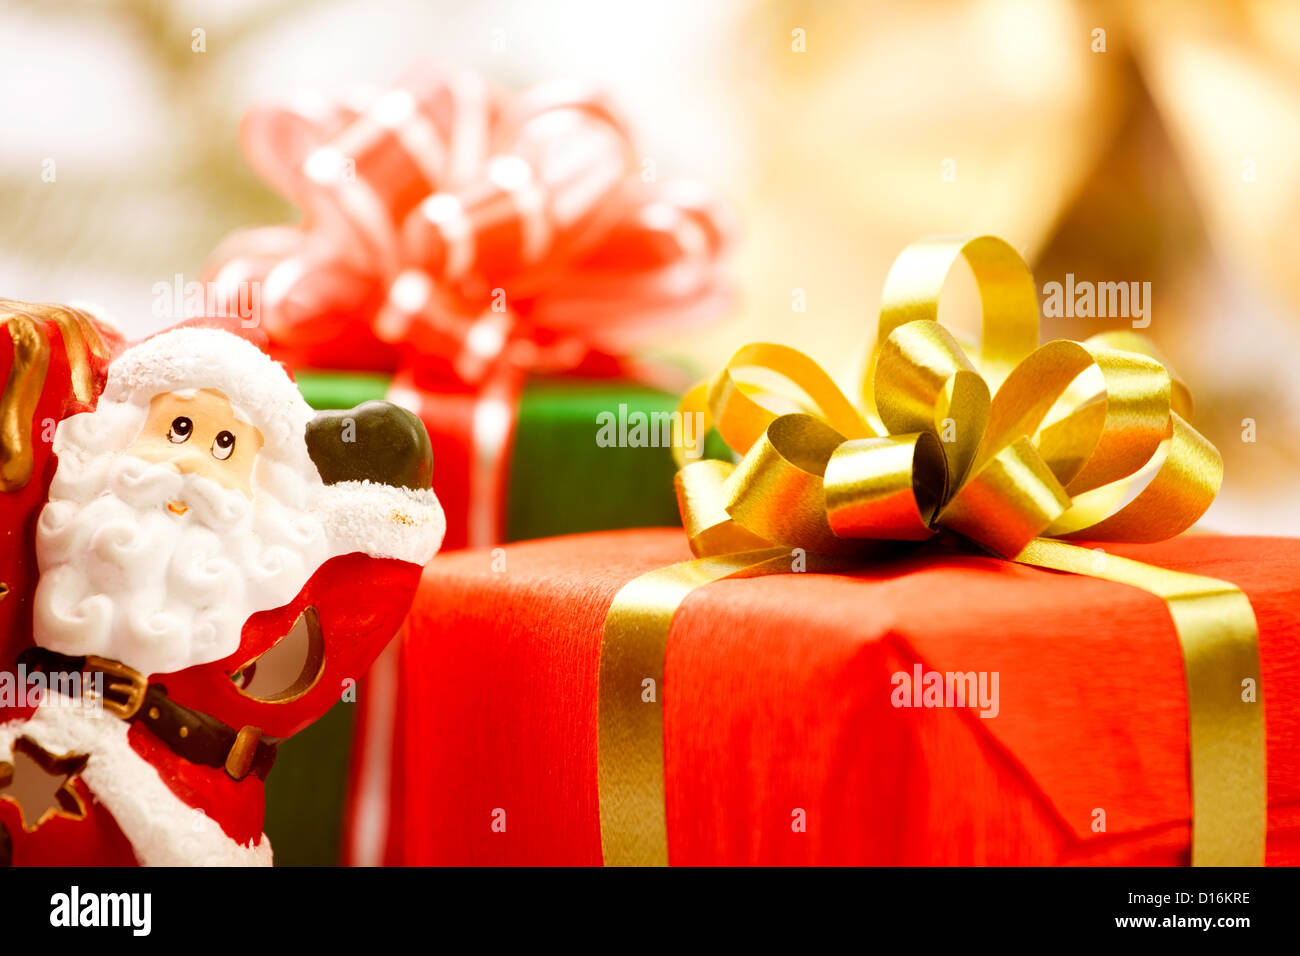 gift box present red santa closeup - Stock Image